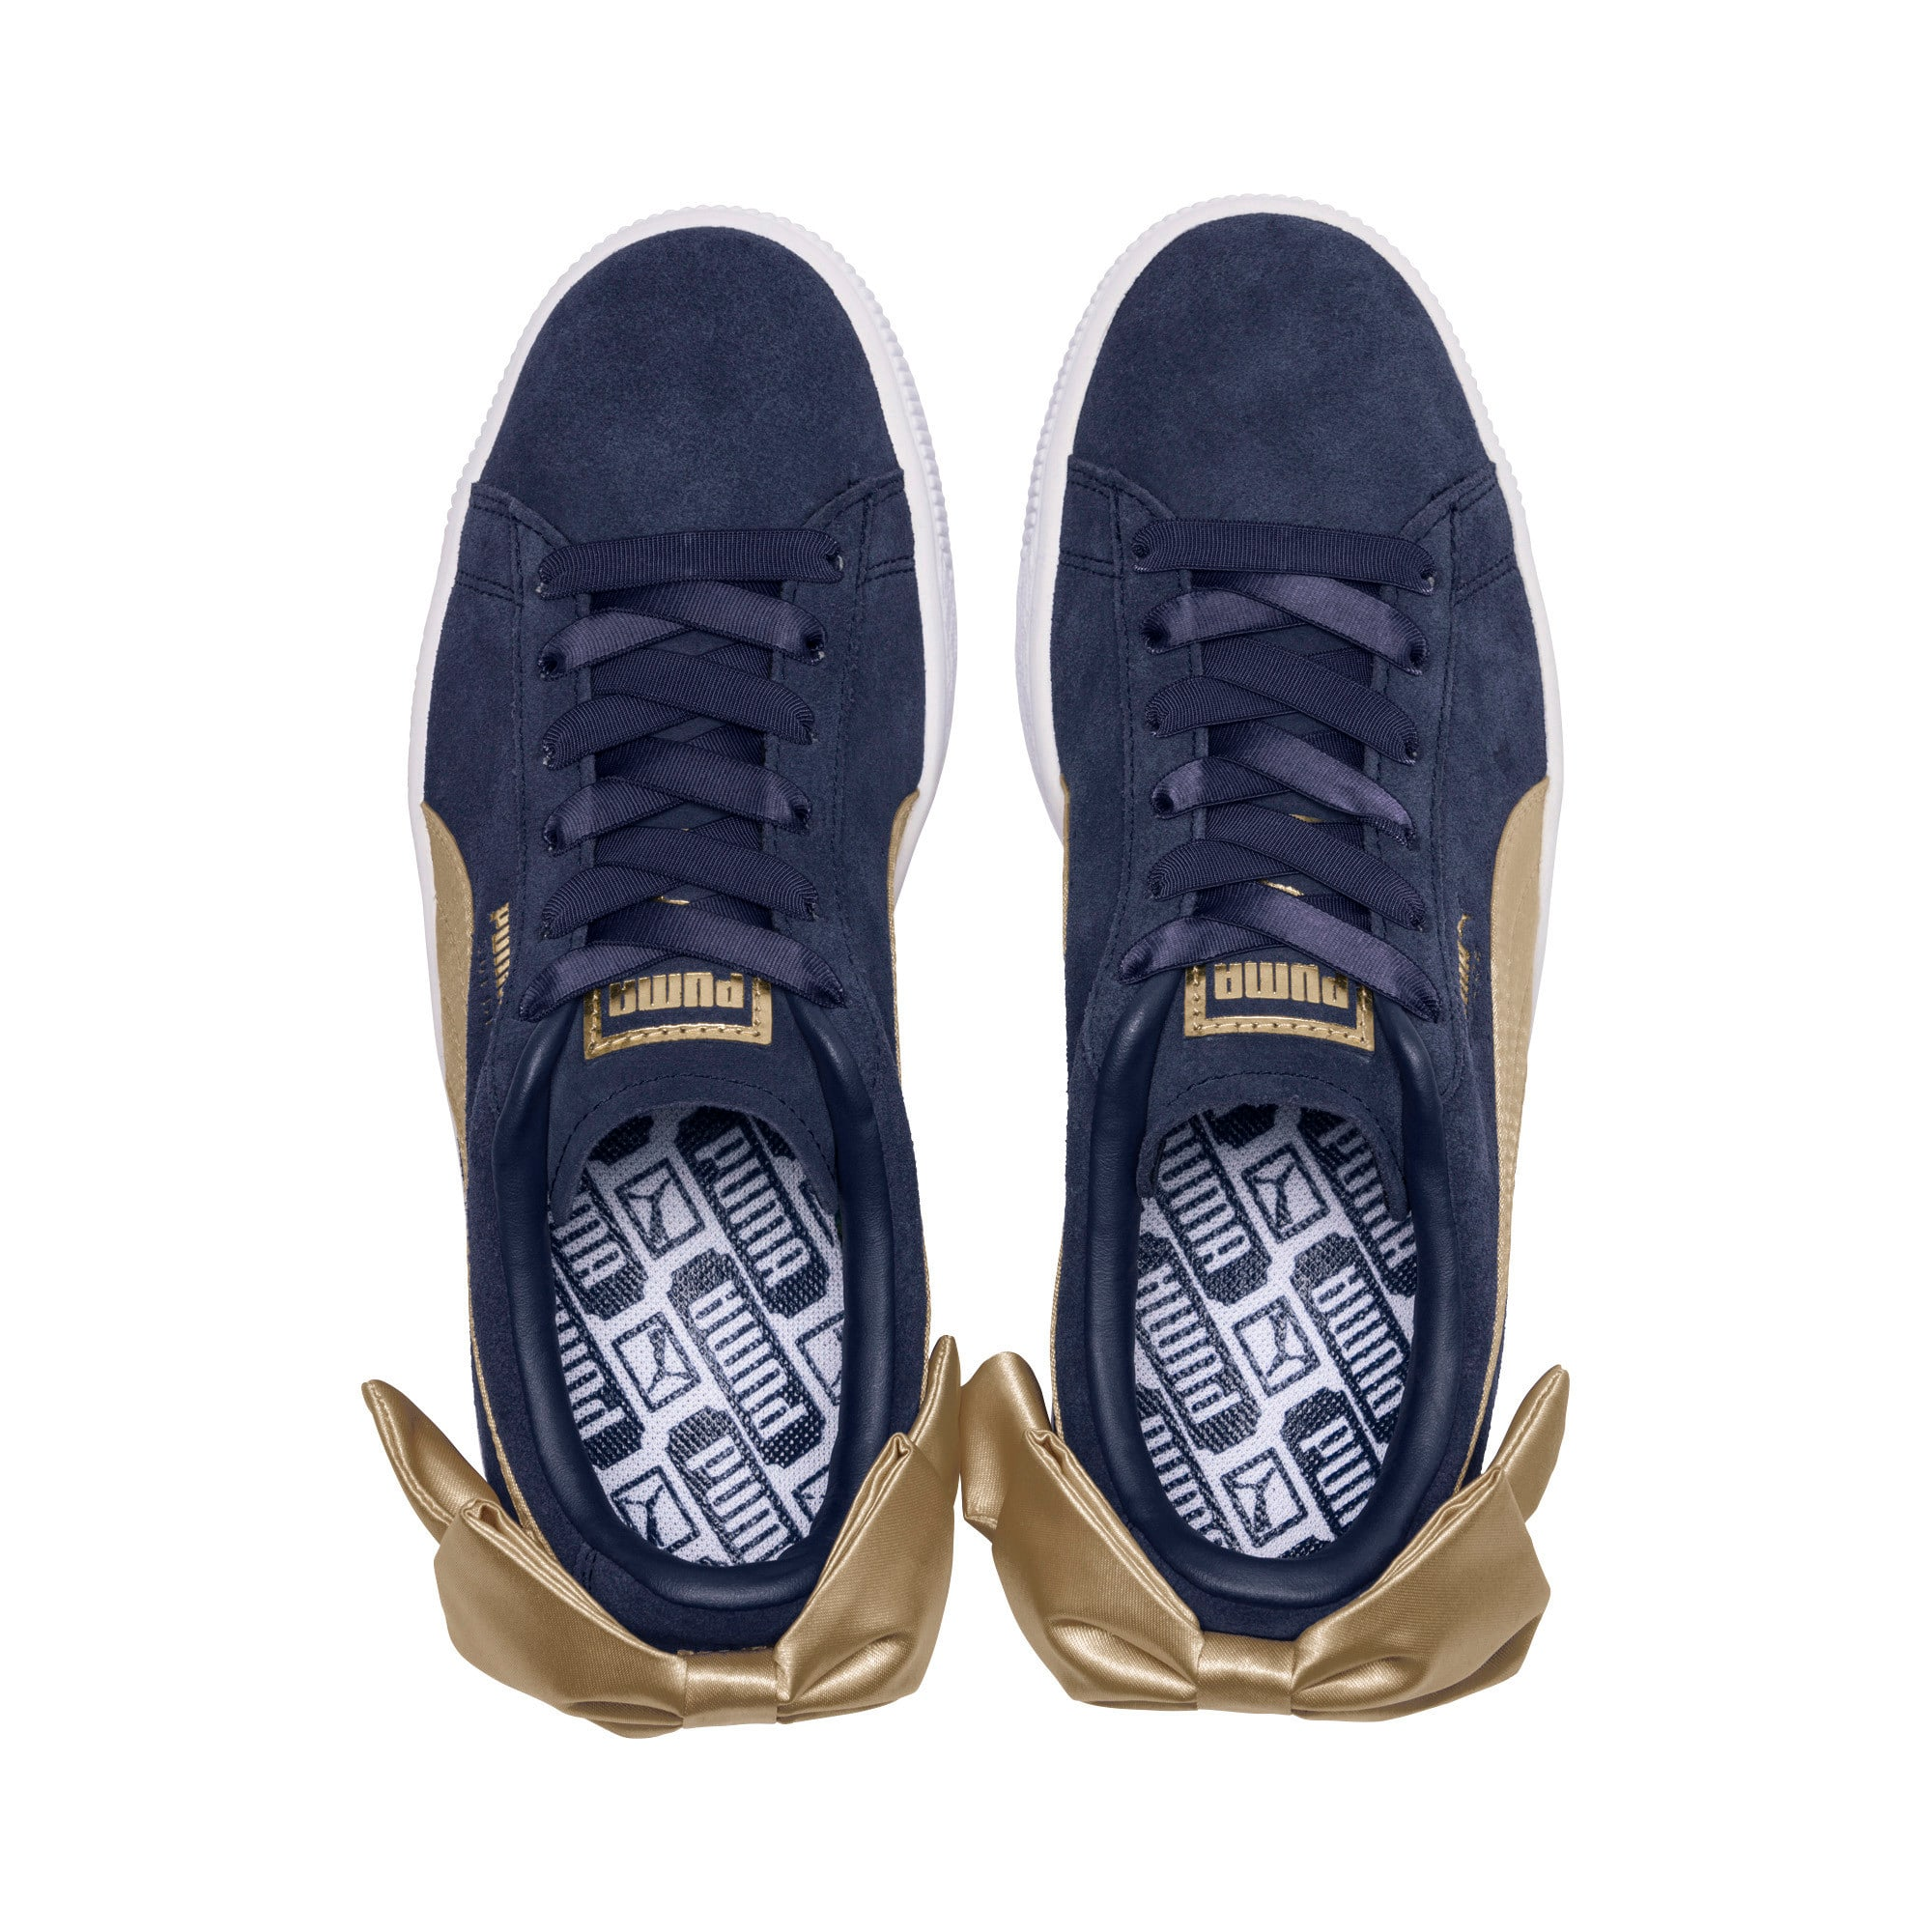 Thumbnail 6 of Suede Bow Varsity Women's Trainers, Peacoat-Metallic Gold, medium-IND